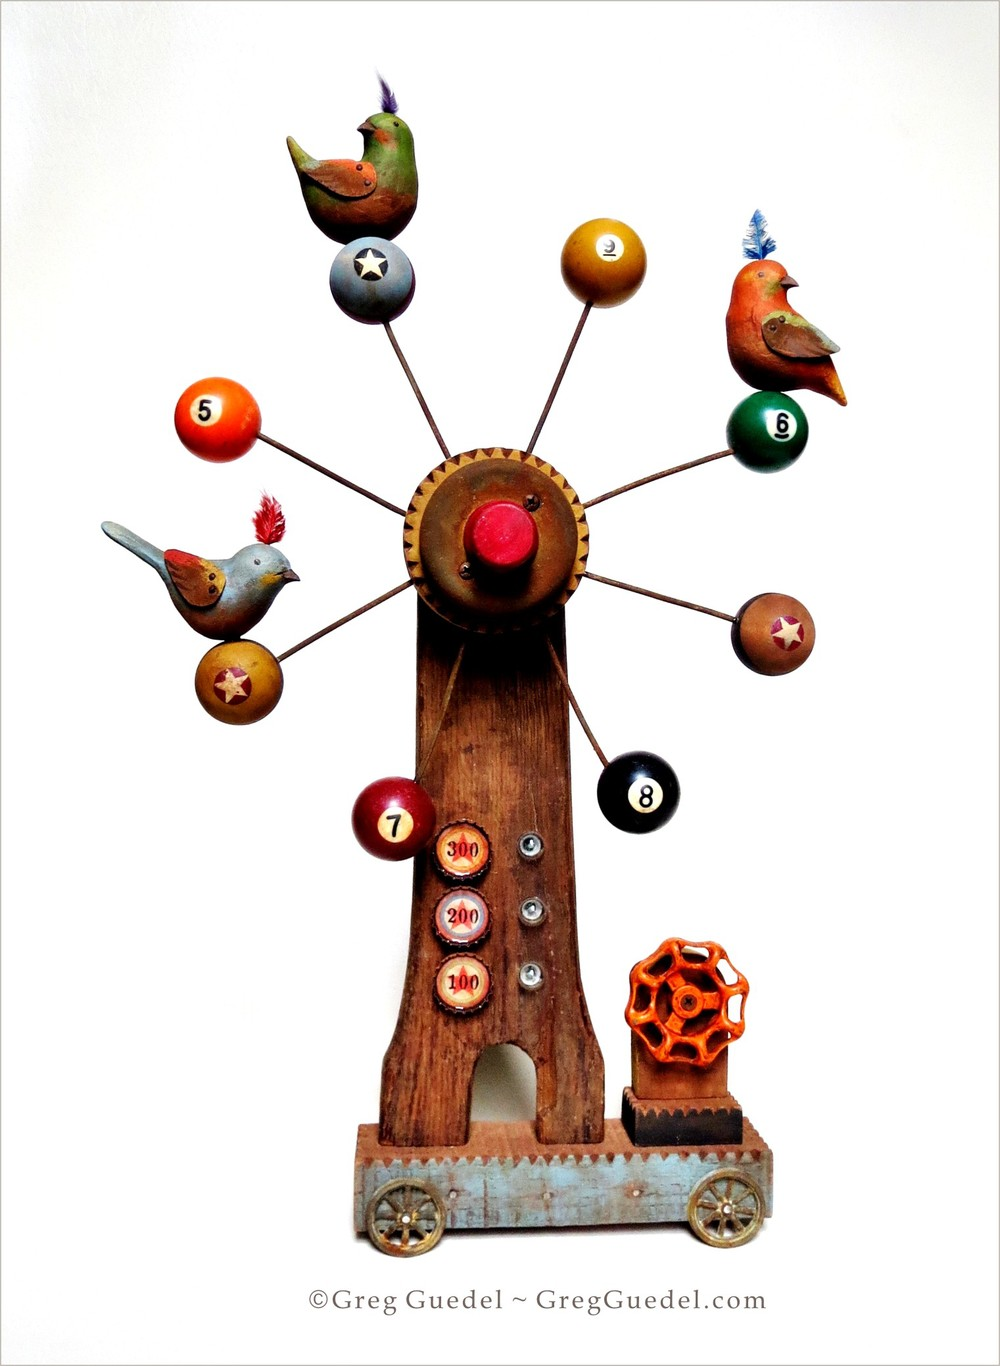 Greg Guedel Fortune Wheel folk art toy assemblage from carved wood birds and found and vintage objects